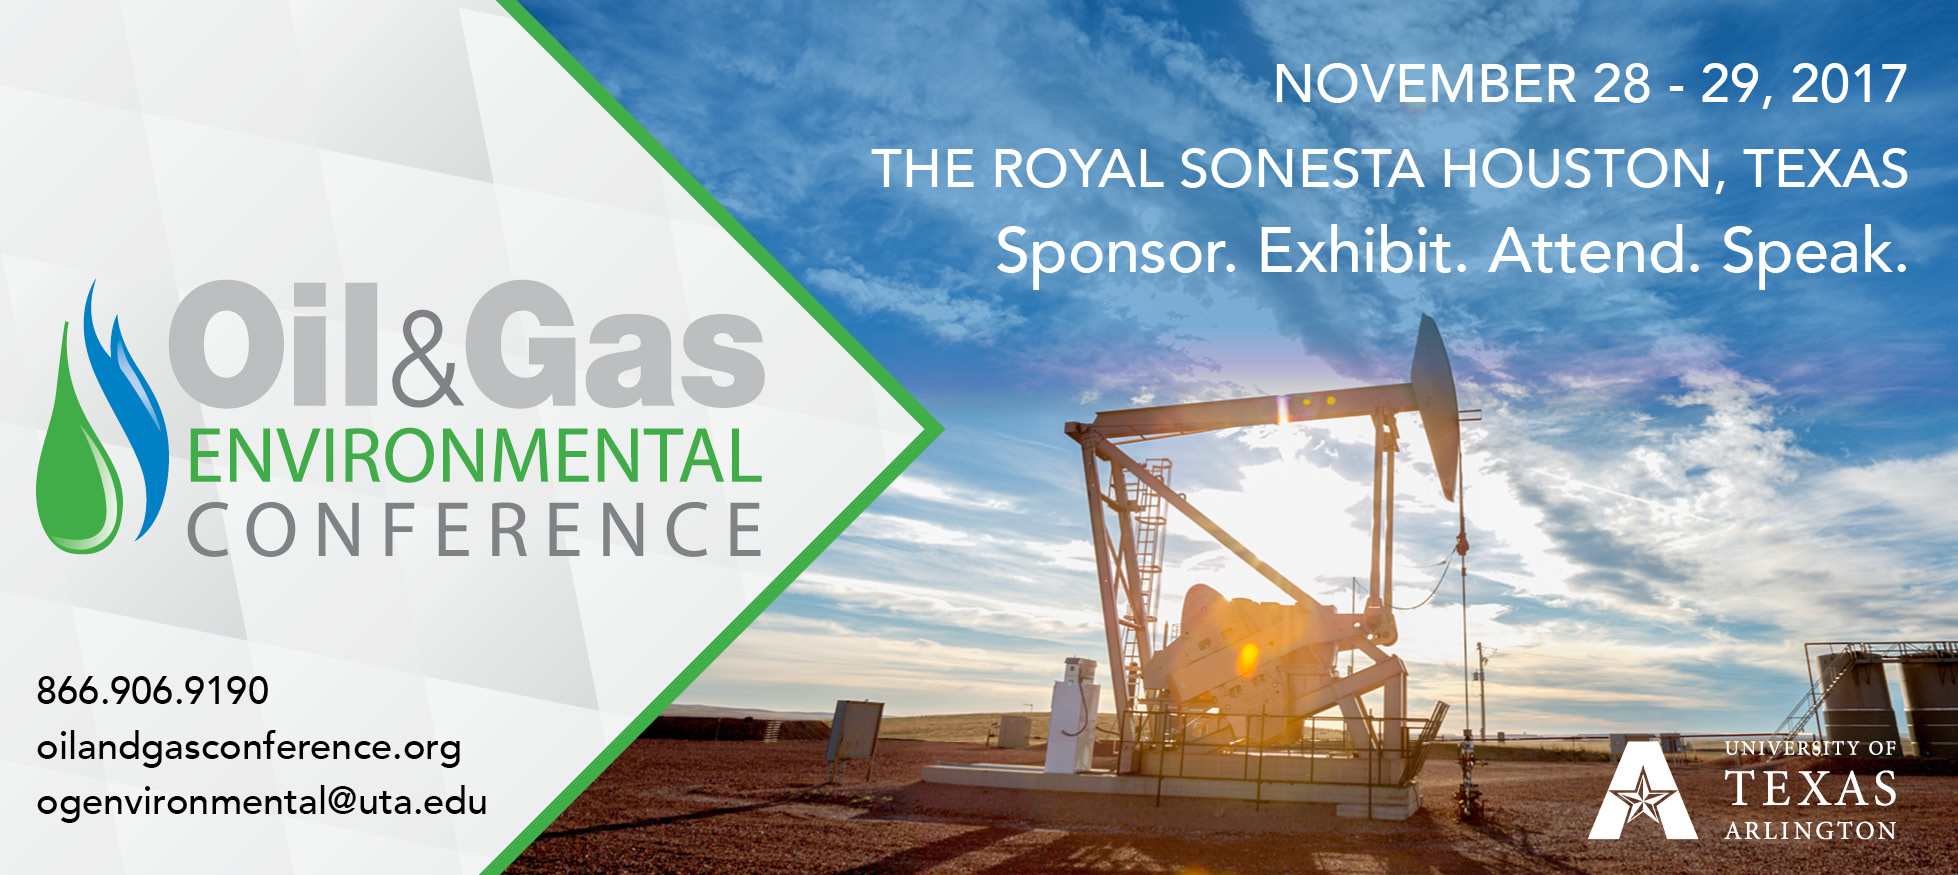 2017 Oil & Gas Environmental Conference